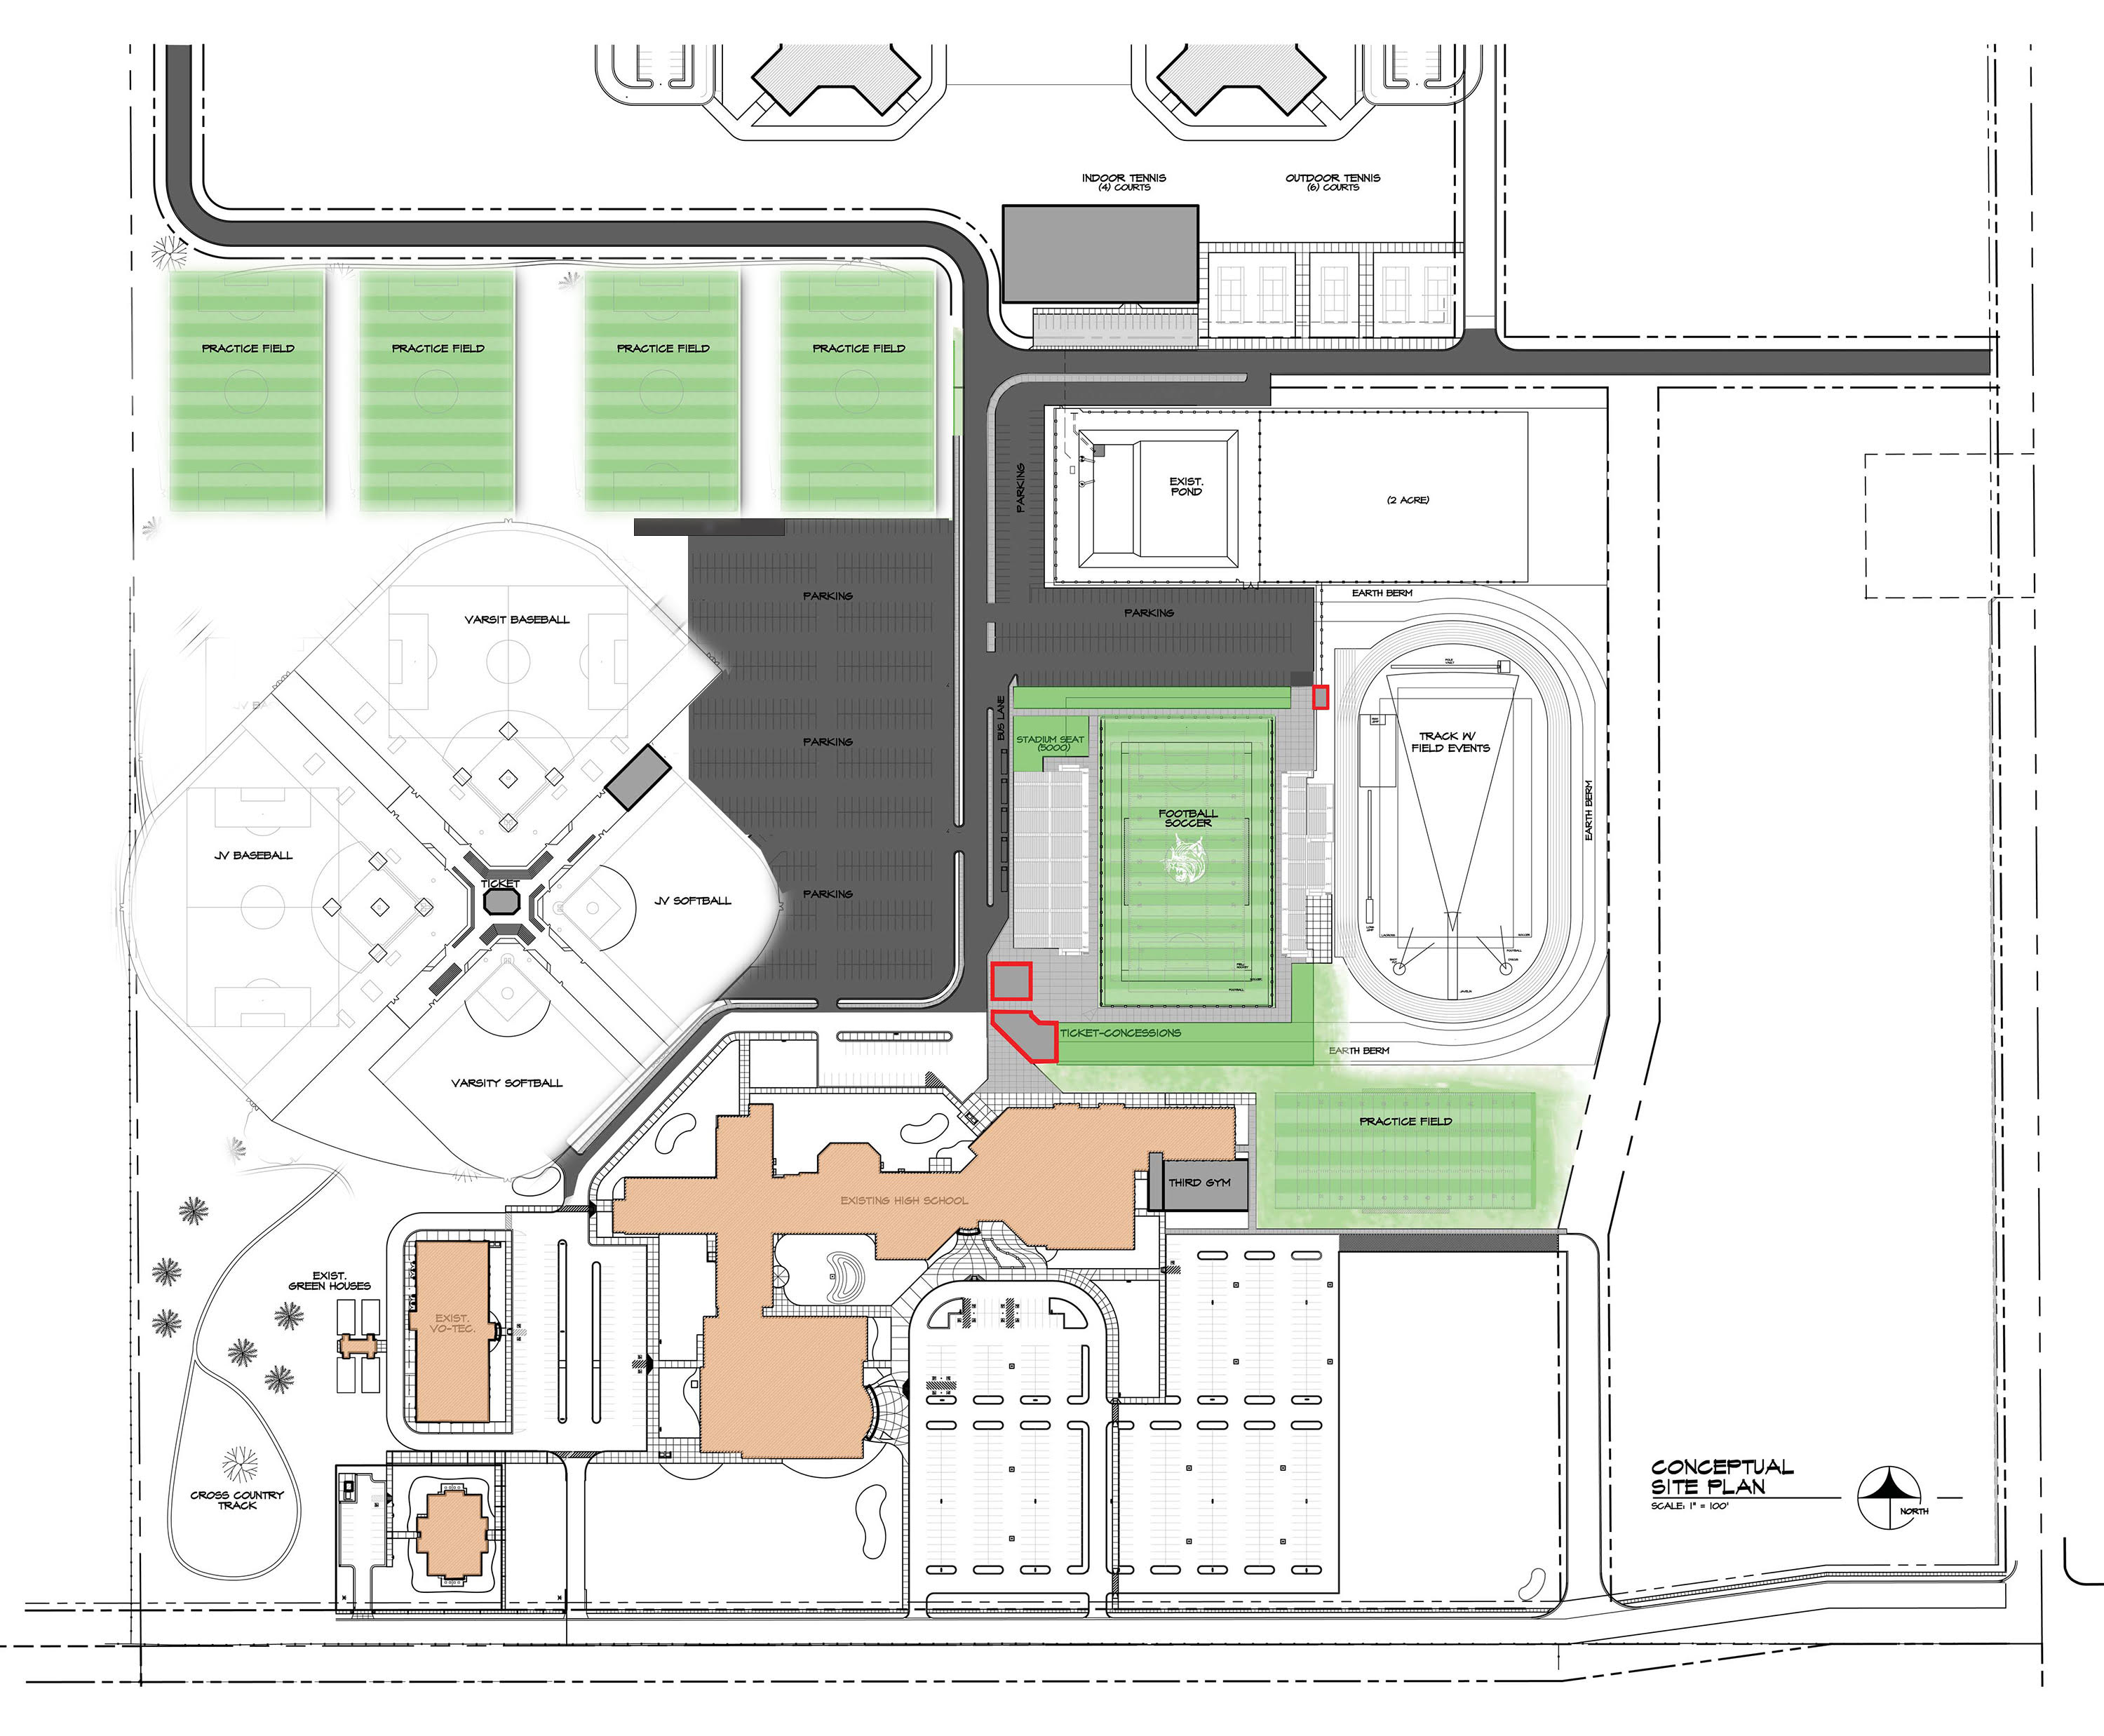 Madison 39 s new sports complex bobcat beat for Sports complex planning design